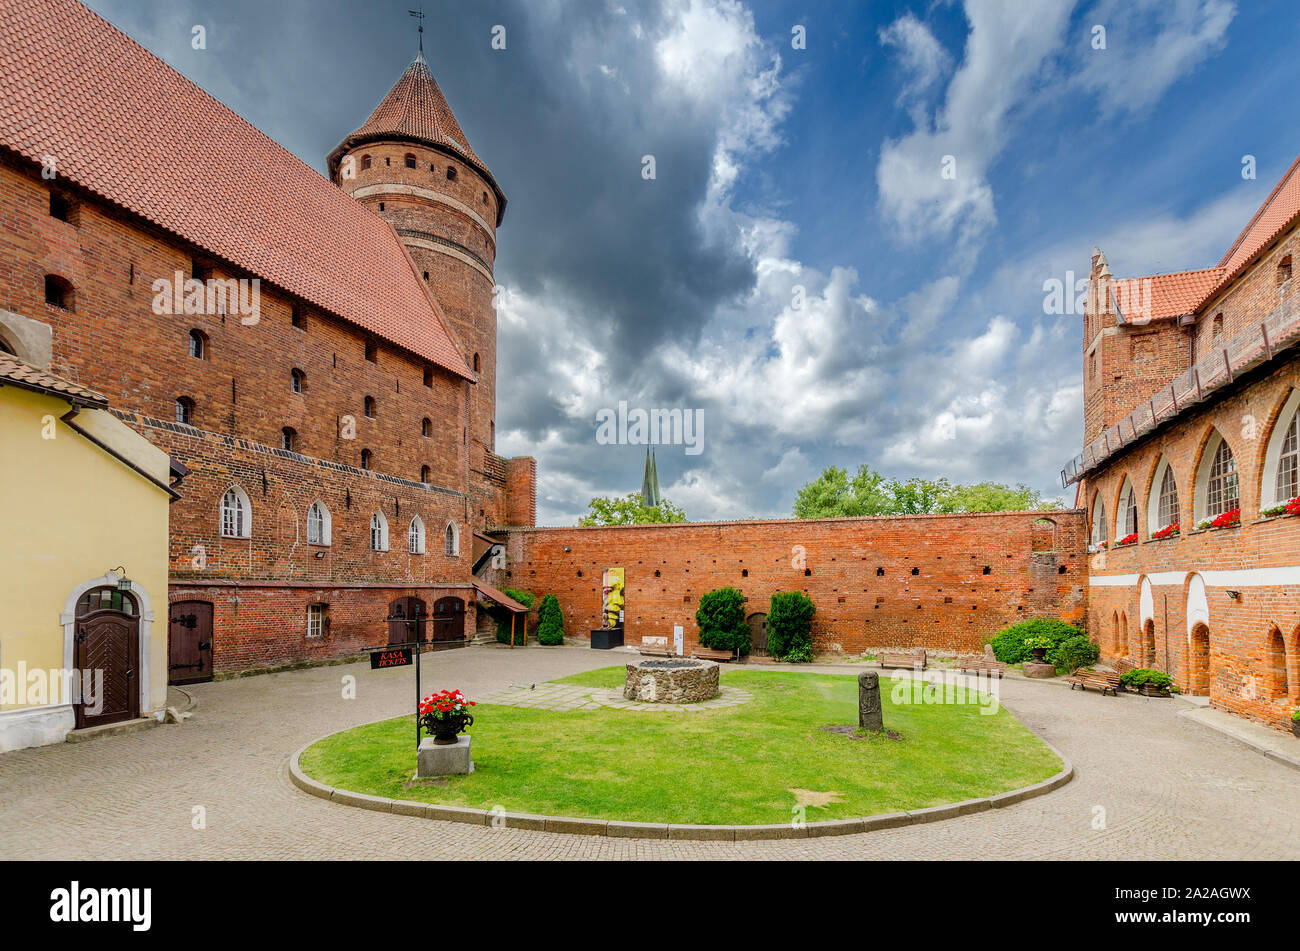 Olsztyn (ger.: Allenstein), Warmian-mazurian province, Poland.  Courtyard of the 14th c. gothic castle, former seat of the prince-bishopric of Warmia Stock Photo